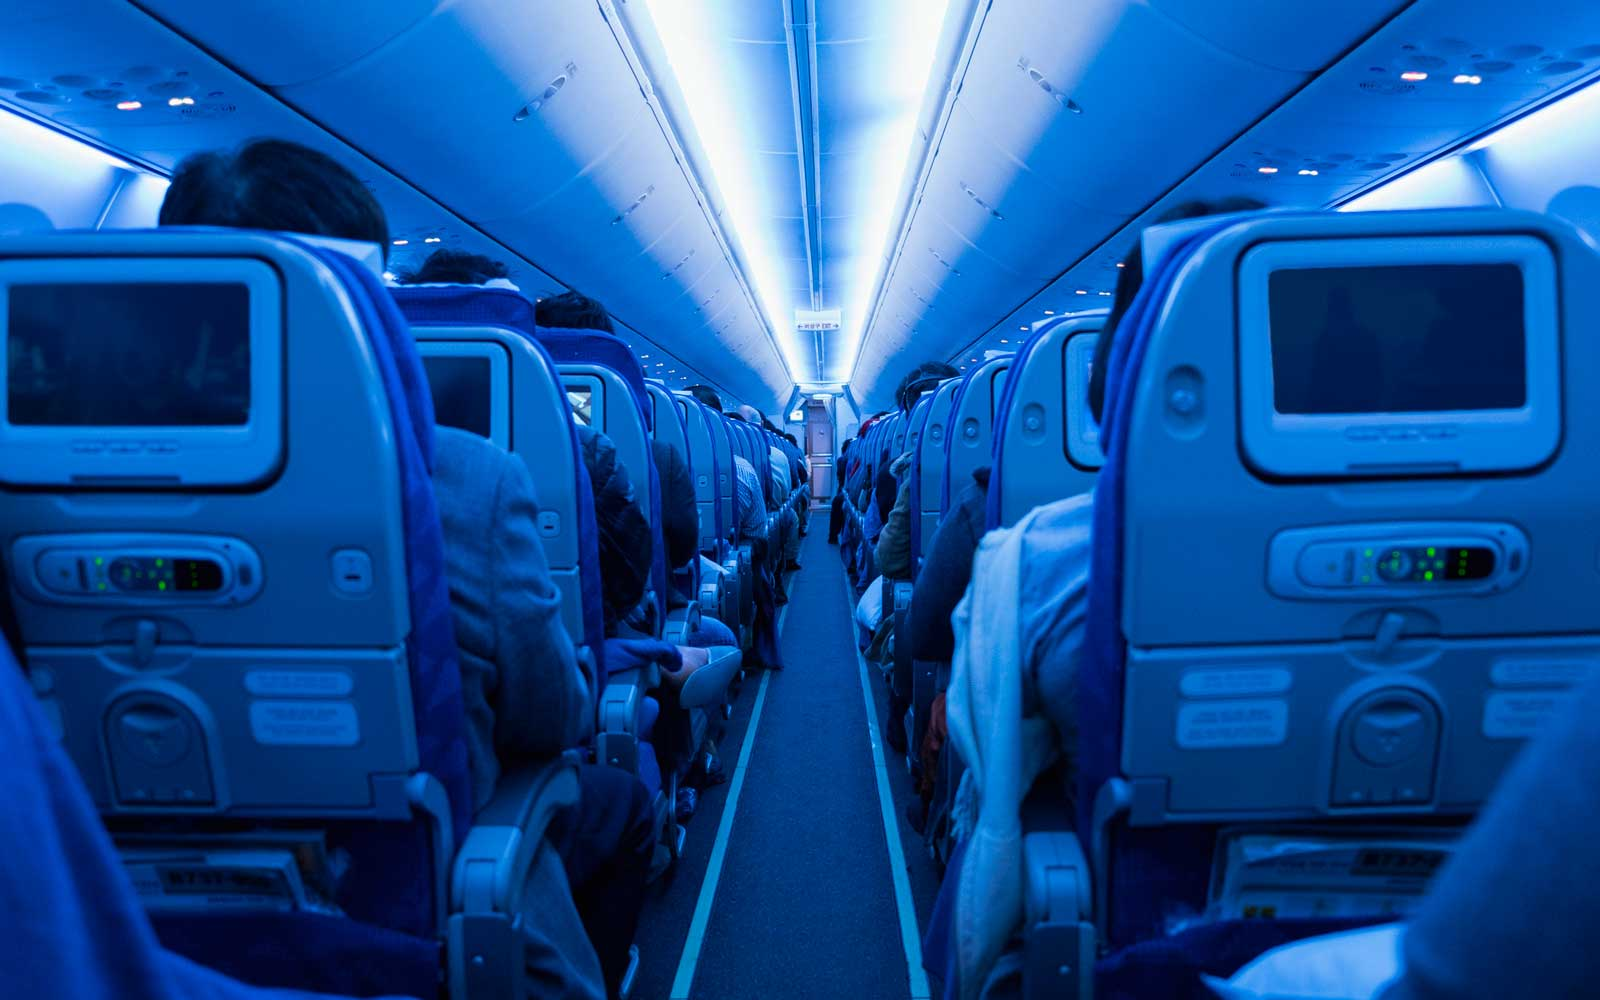 How Airplane Lights are Designed to Affect Your Mood